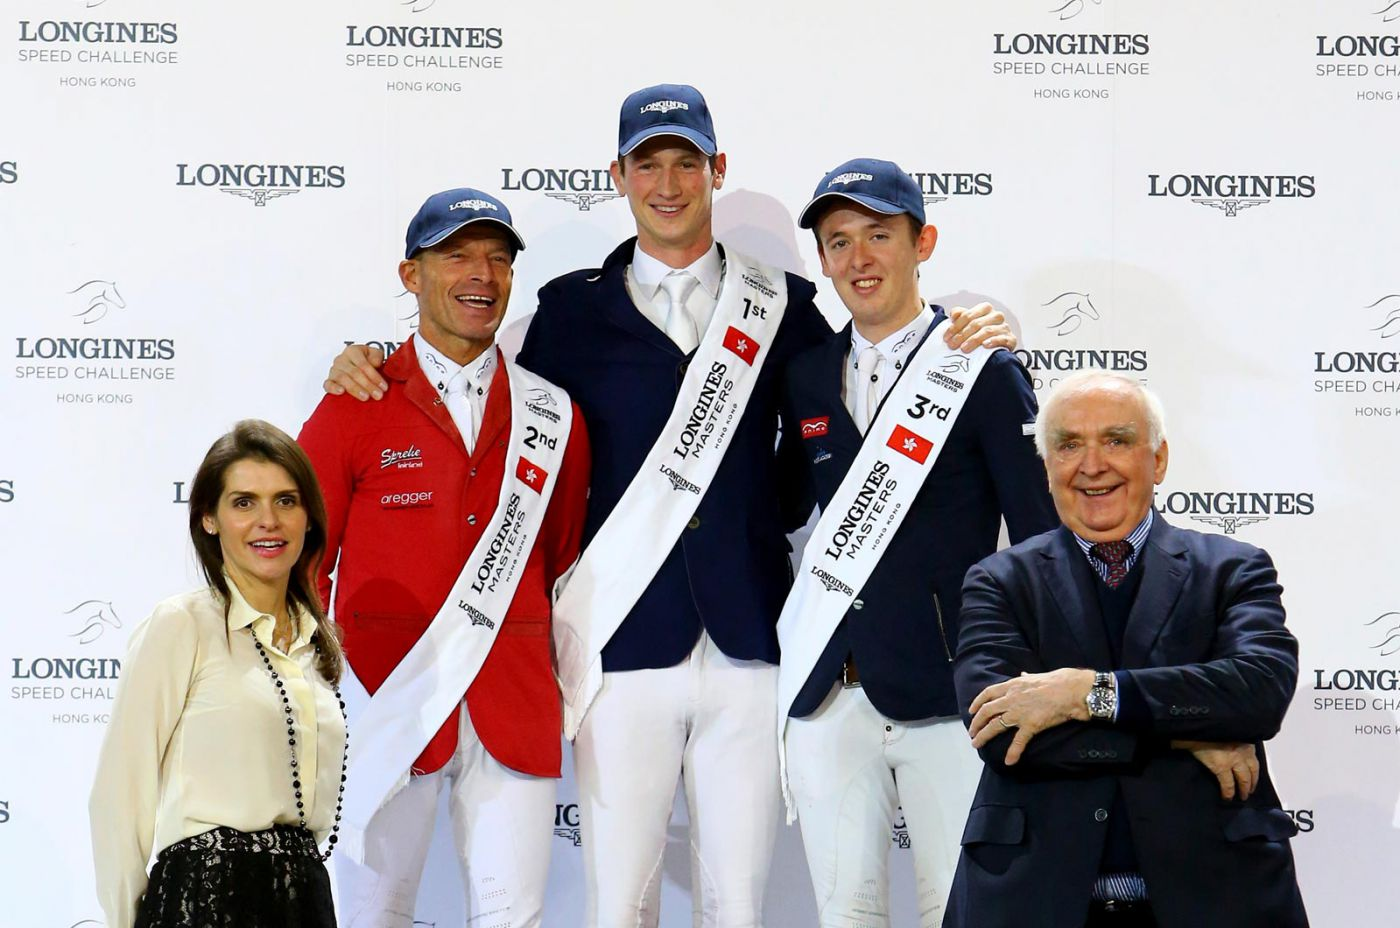 Longines Show Jumping Event: Thrilling emotions during the Longines Speed Challenge, which saw the victory of Daniel Deusser 2